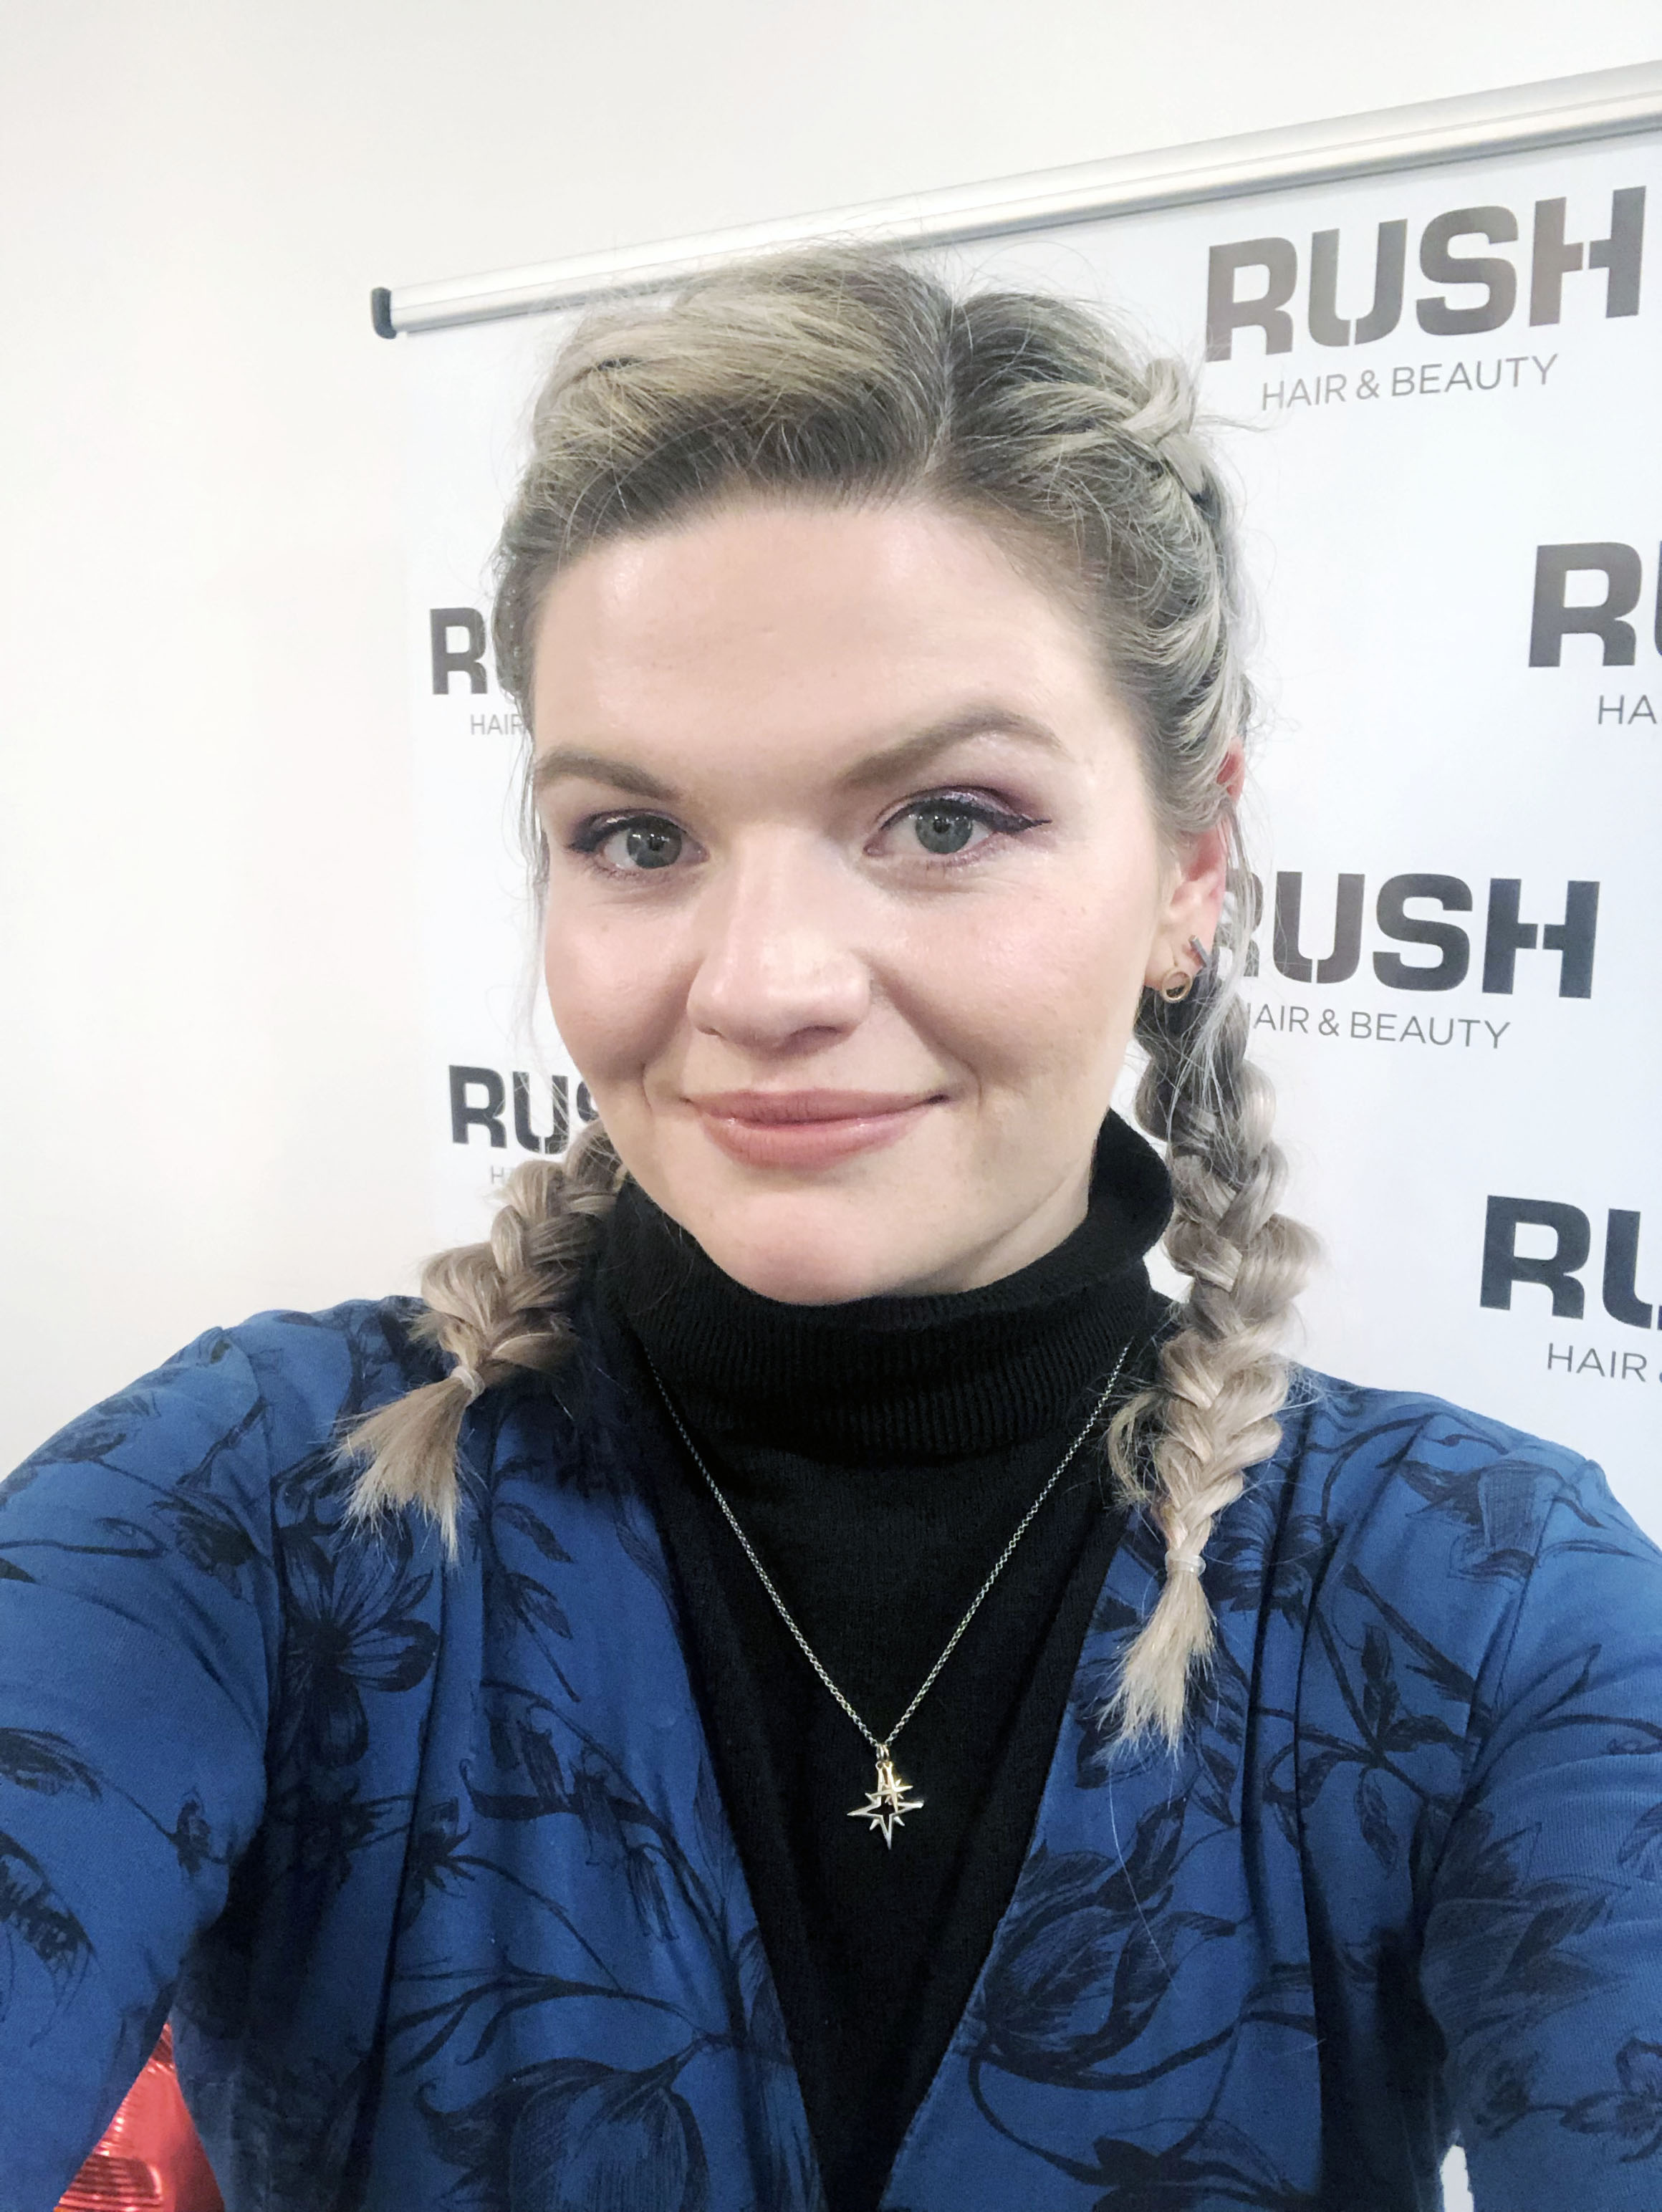 Rush Hair and Beauty Event York 2019